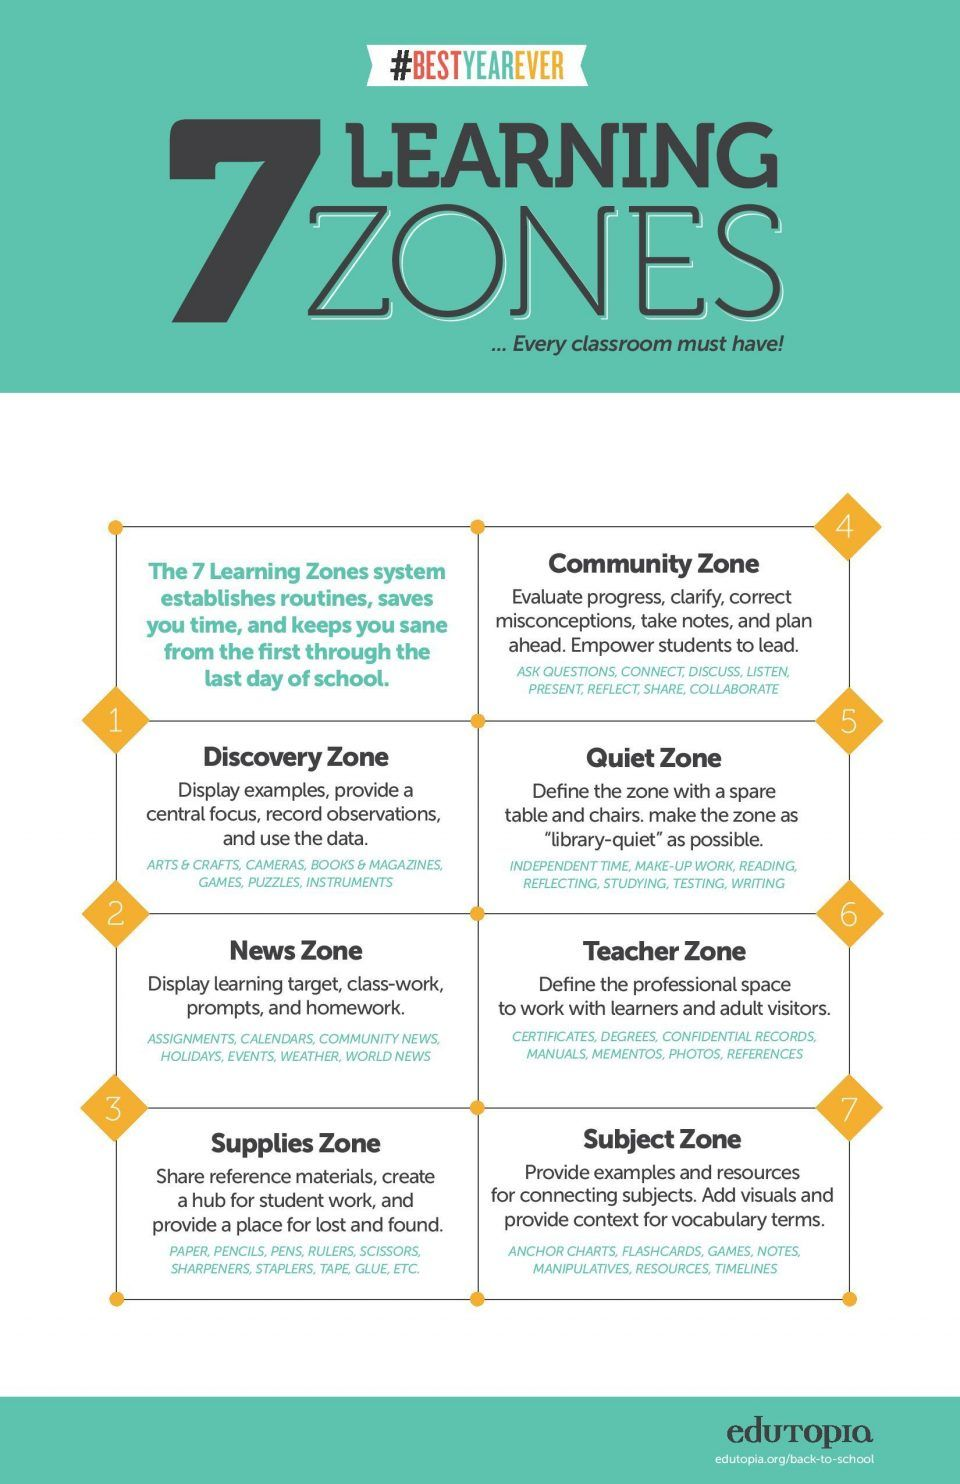 The Learning Zones of a Classroom Infographic